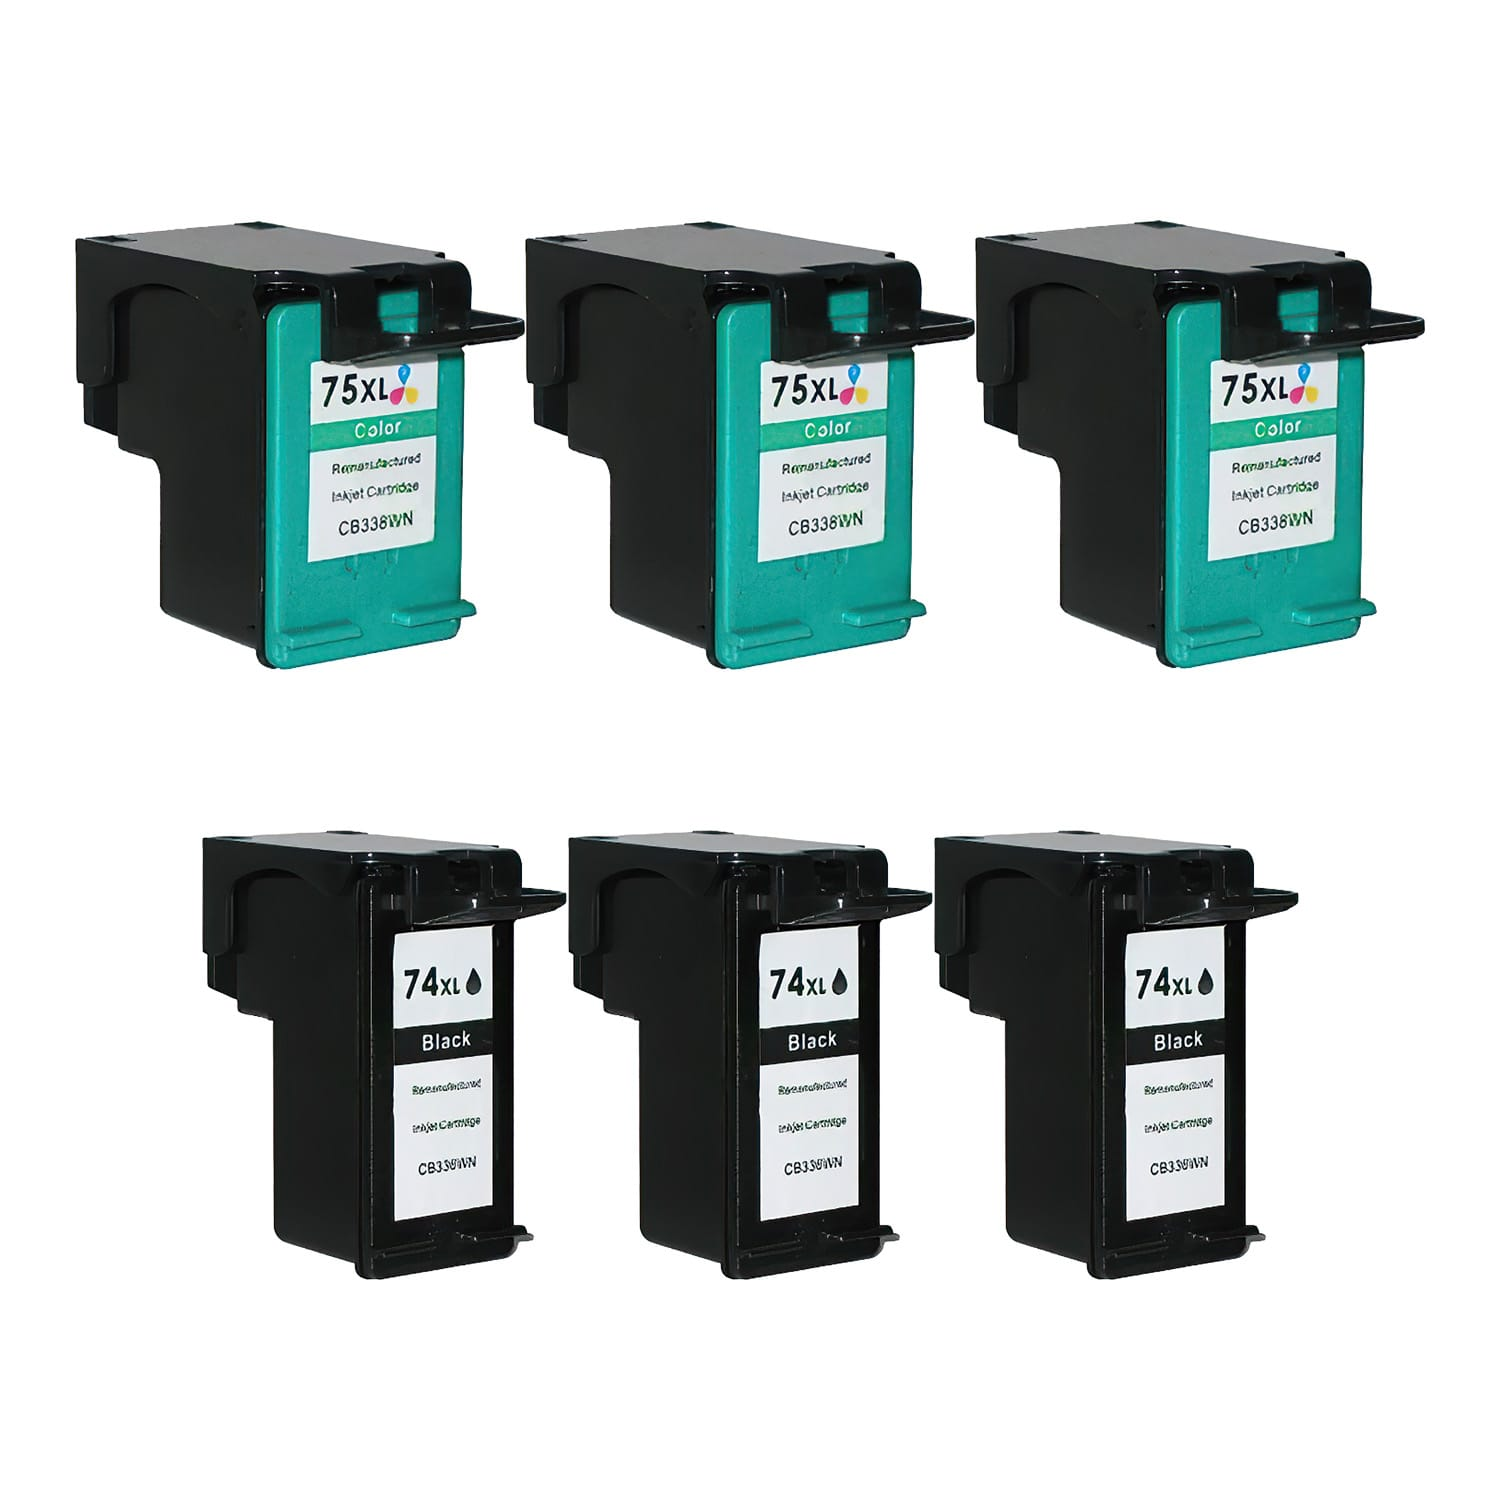 Remanufactured HP 75XL-74XL Inkjet High Capacity Pack - 6 Cartridges